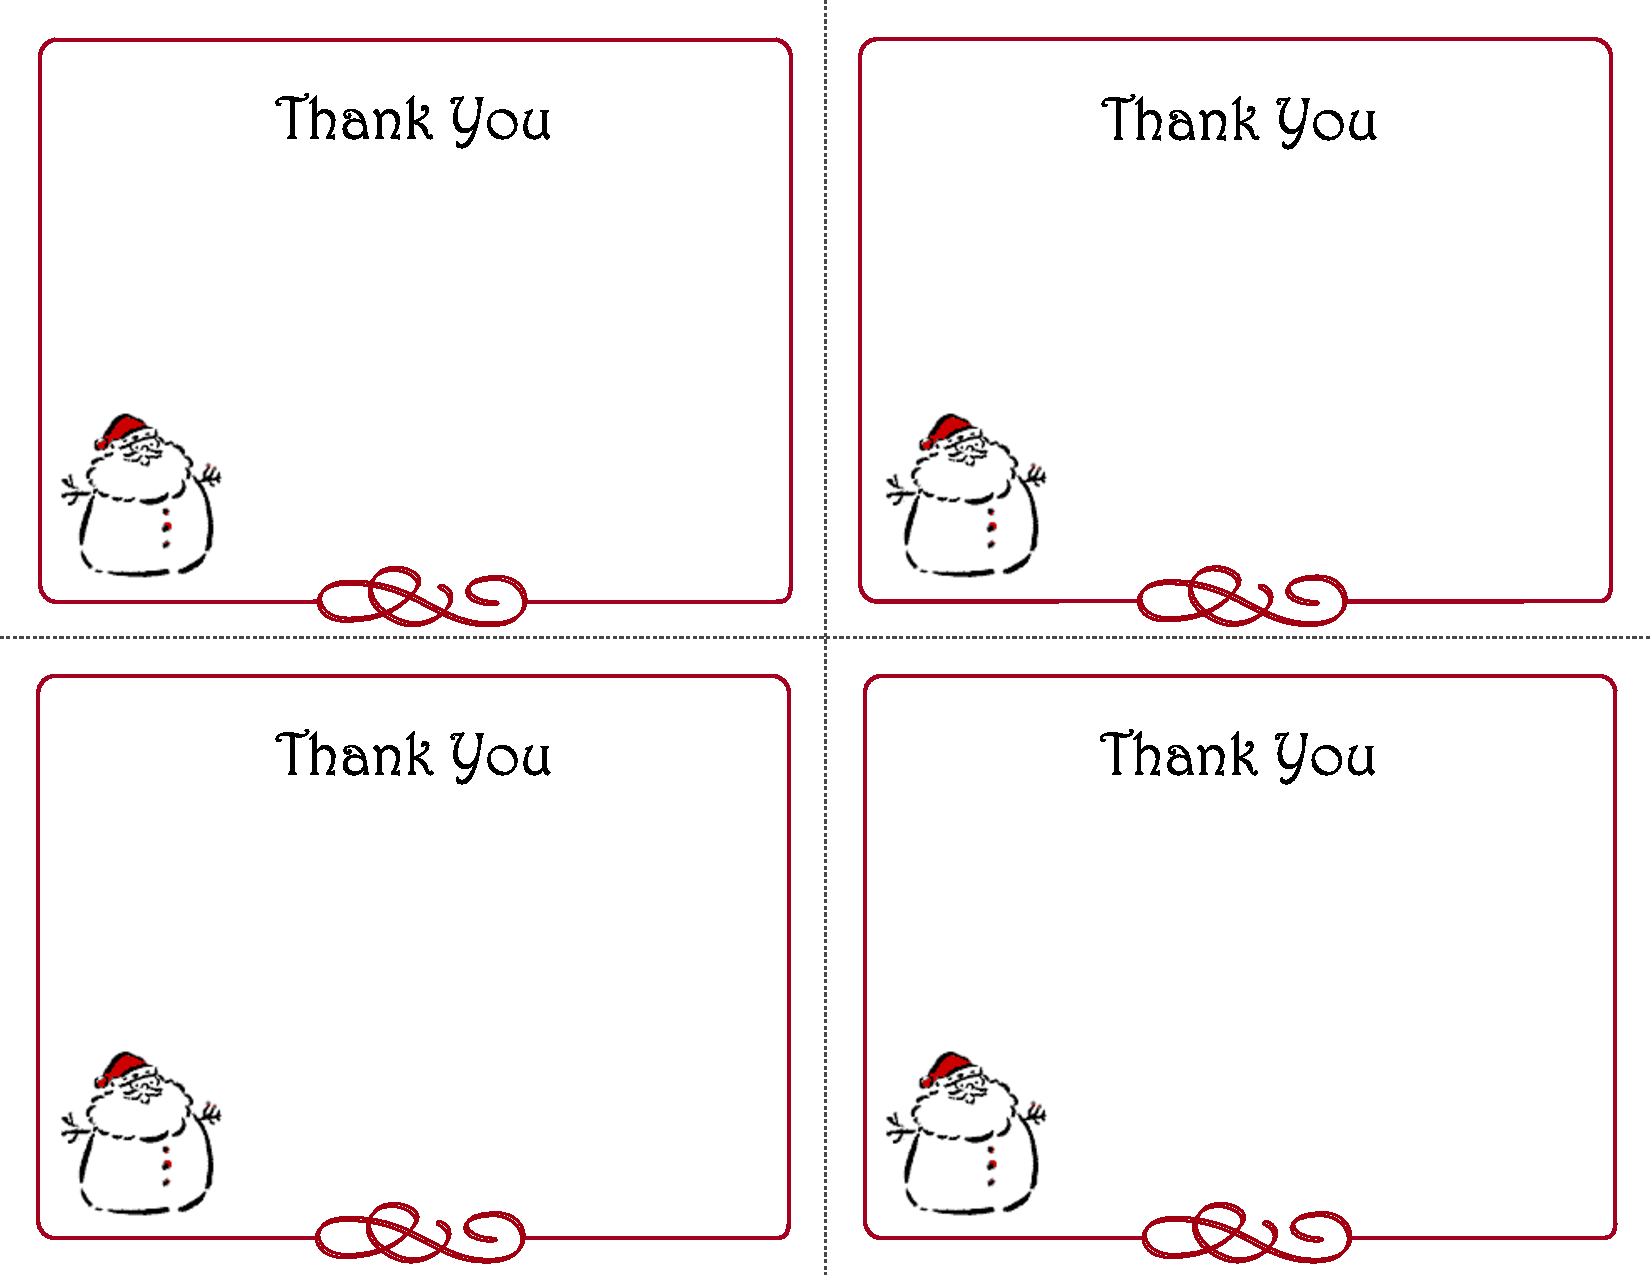 Free Thank You Cards Printable | Free Printable Holiday Gift Tags - Free Printable Thank You Tags Template